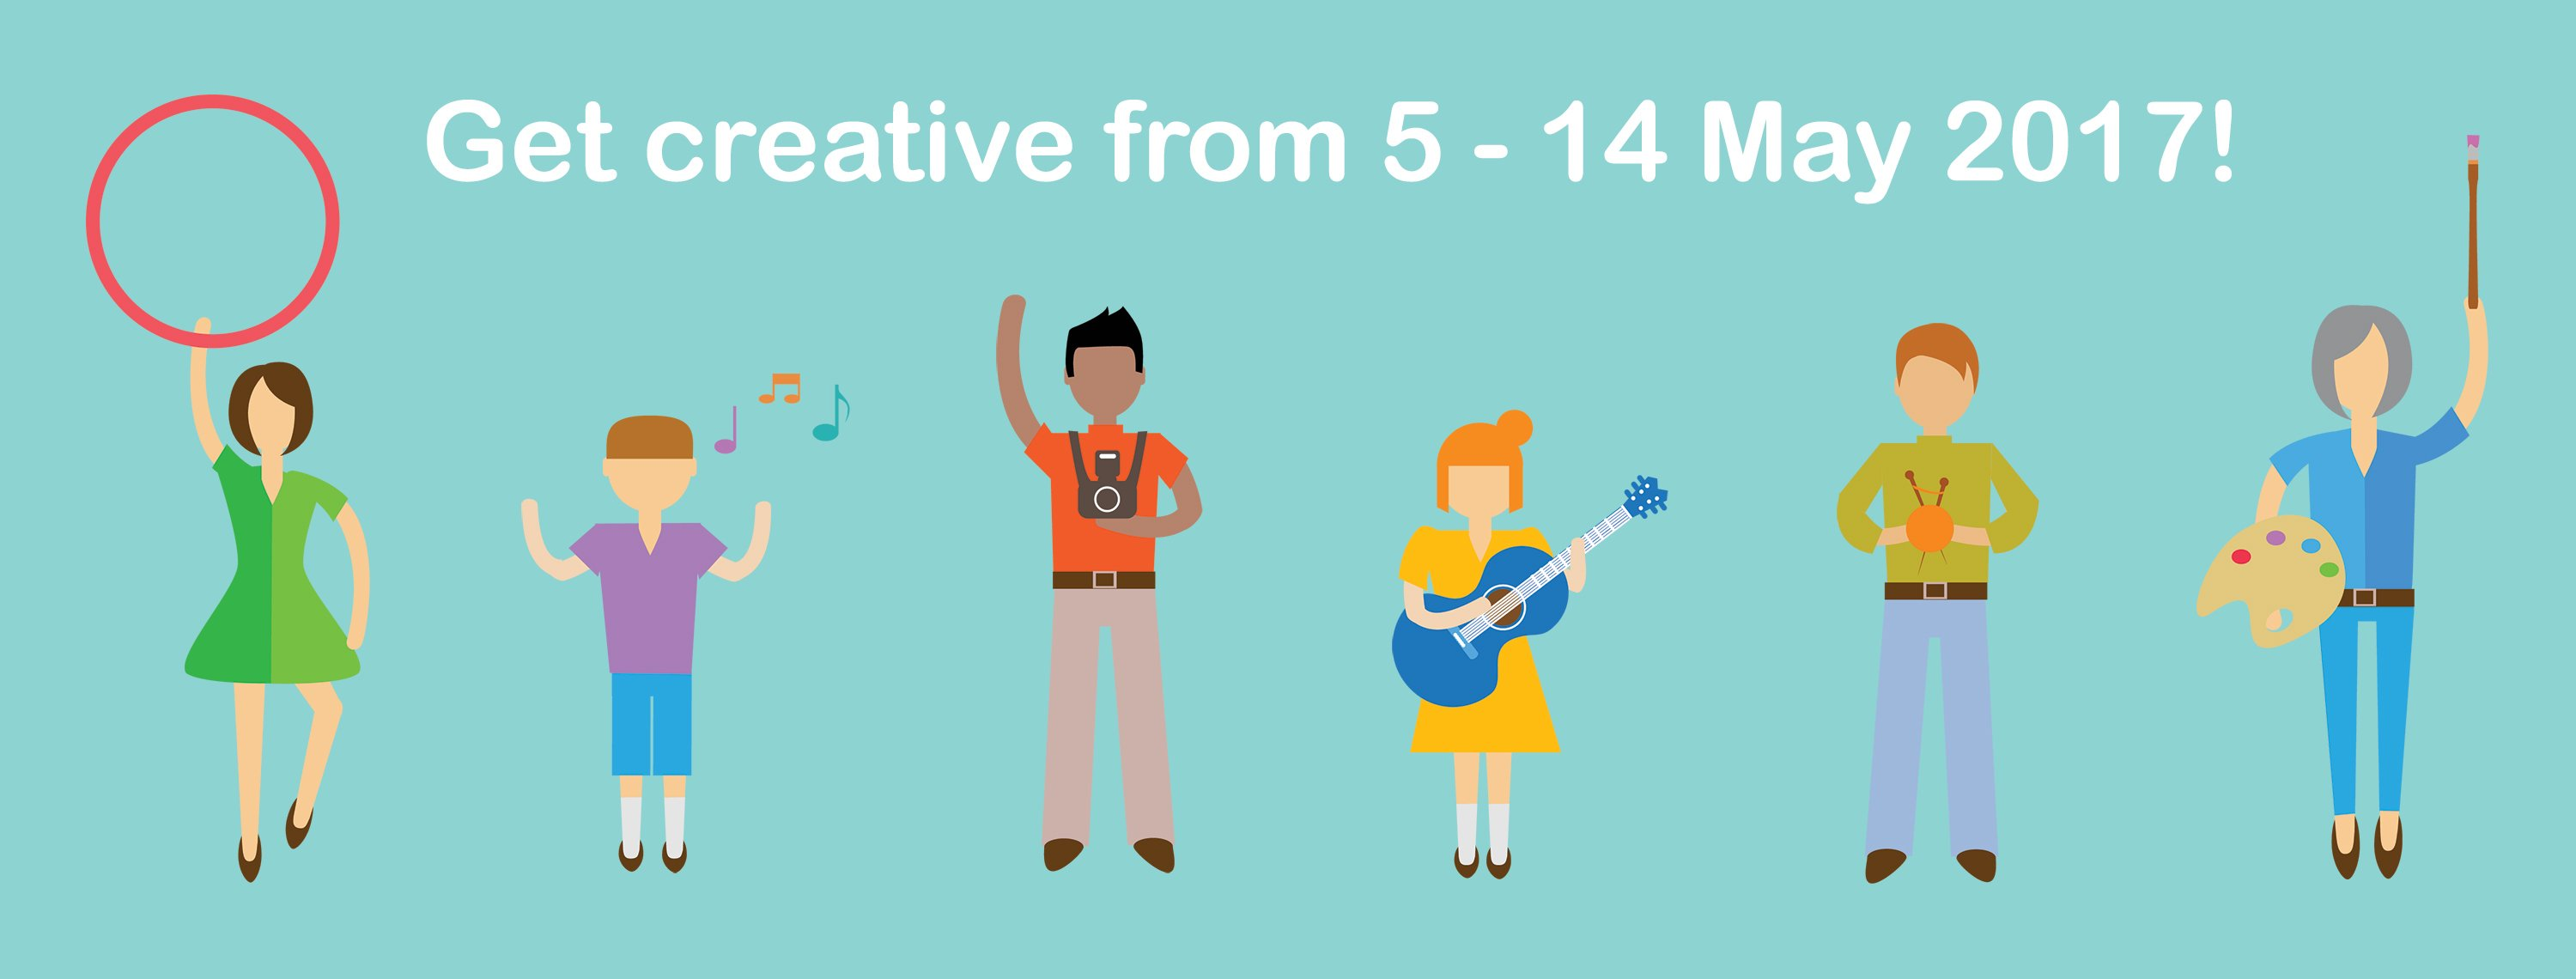 Voluntary Arts Festival 2017 - Get creative from 5 - 14 May 2017!